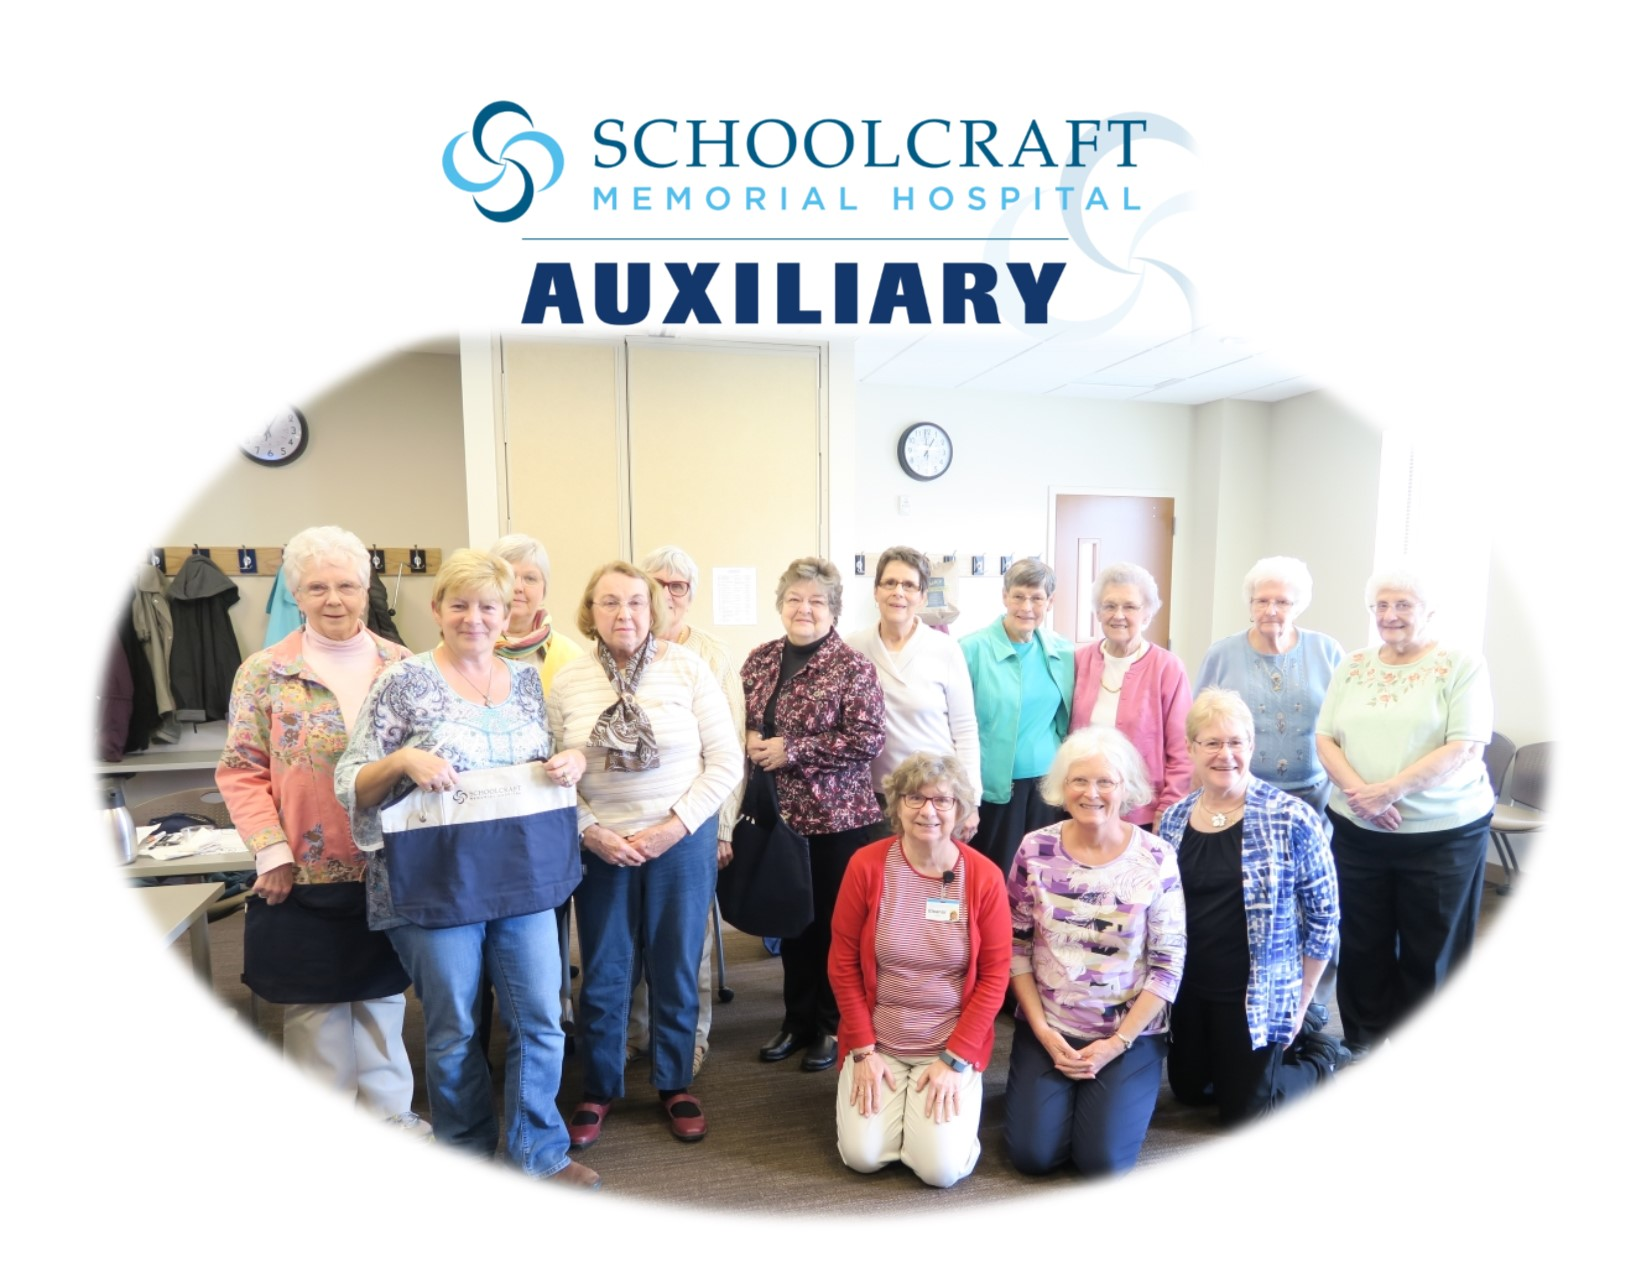 Schoolcraft Memorial Hospital Auxiliary